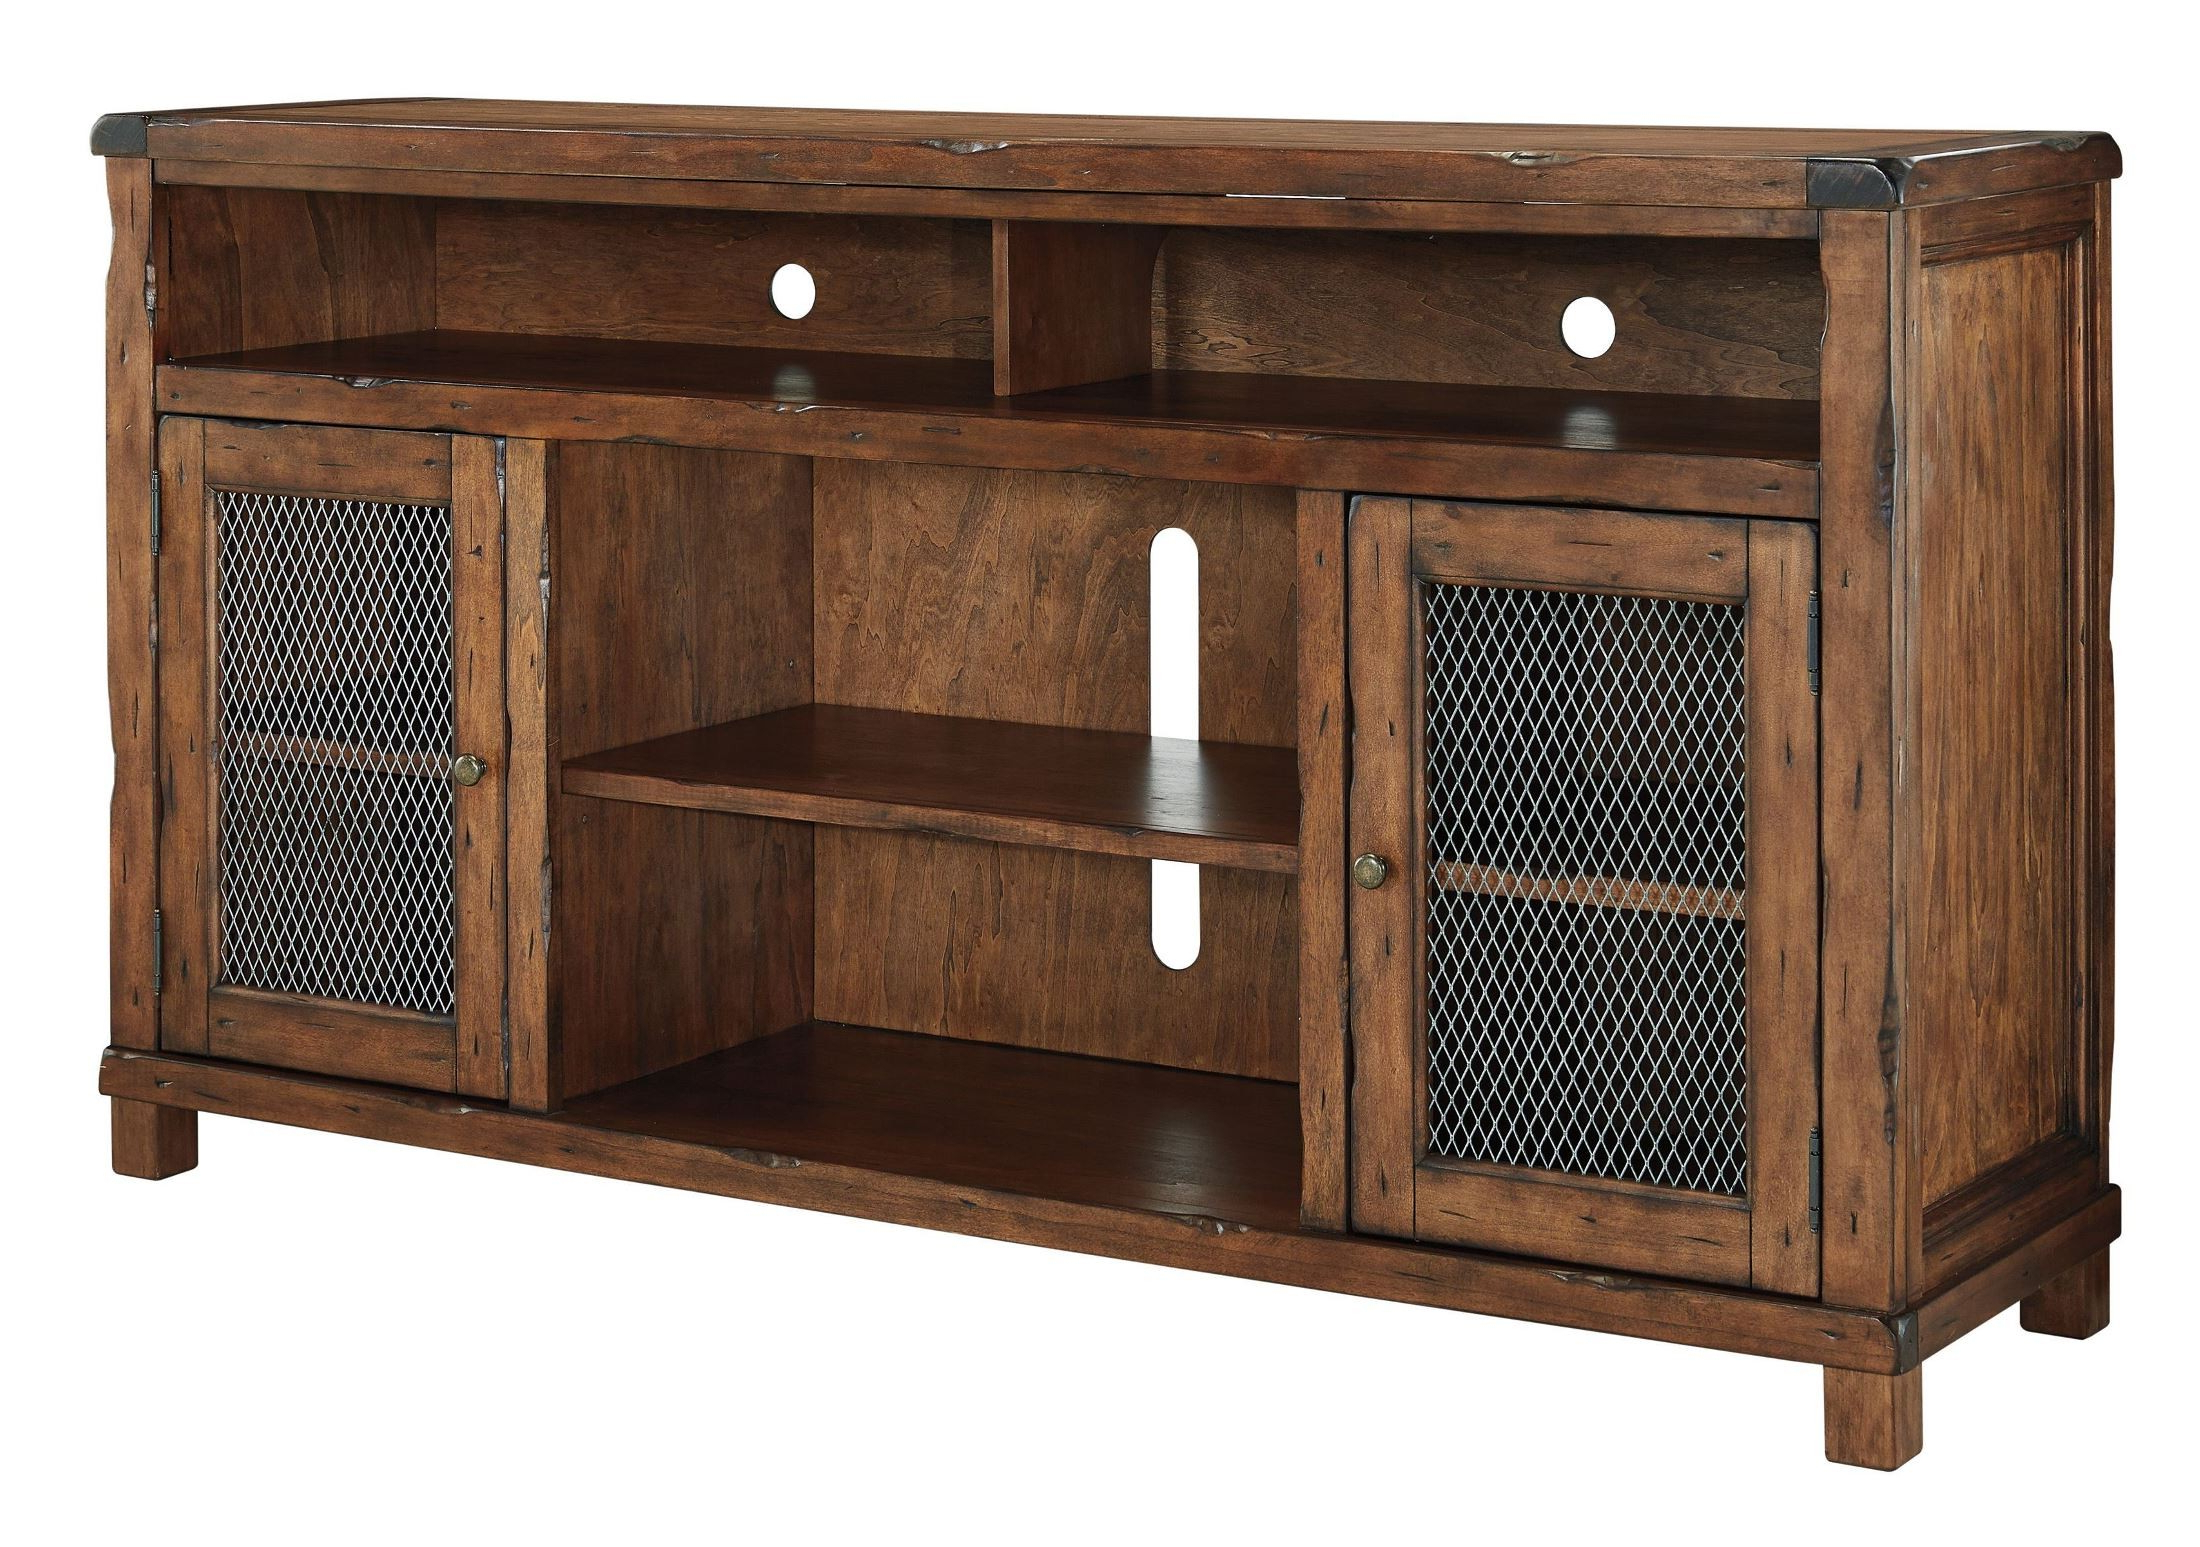 Tamonie Rustic Brown Extra Large Tv Stand With Fireplace Intended For Delta Large Tv Stands (View 8 of 15)